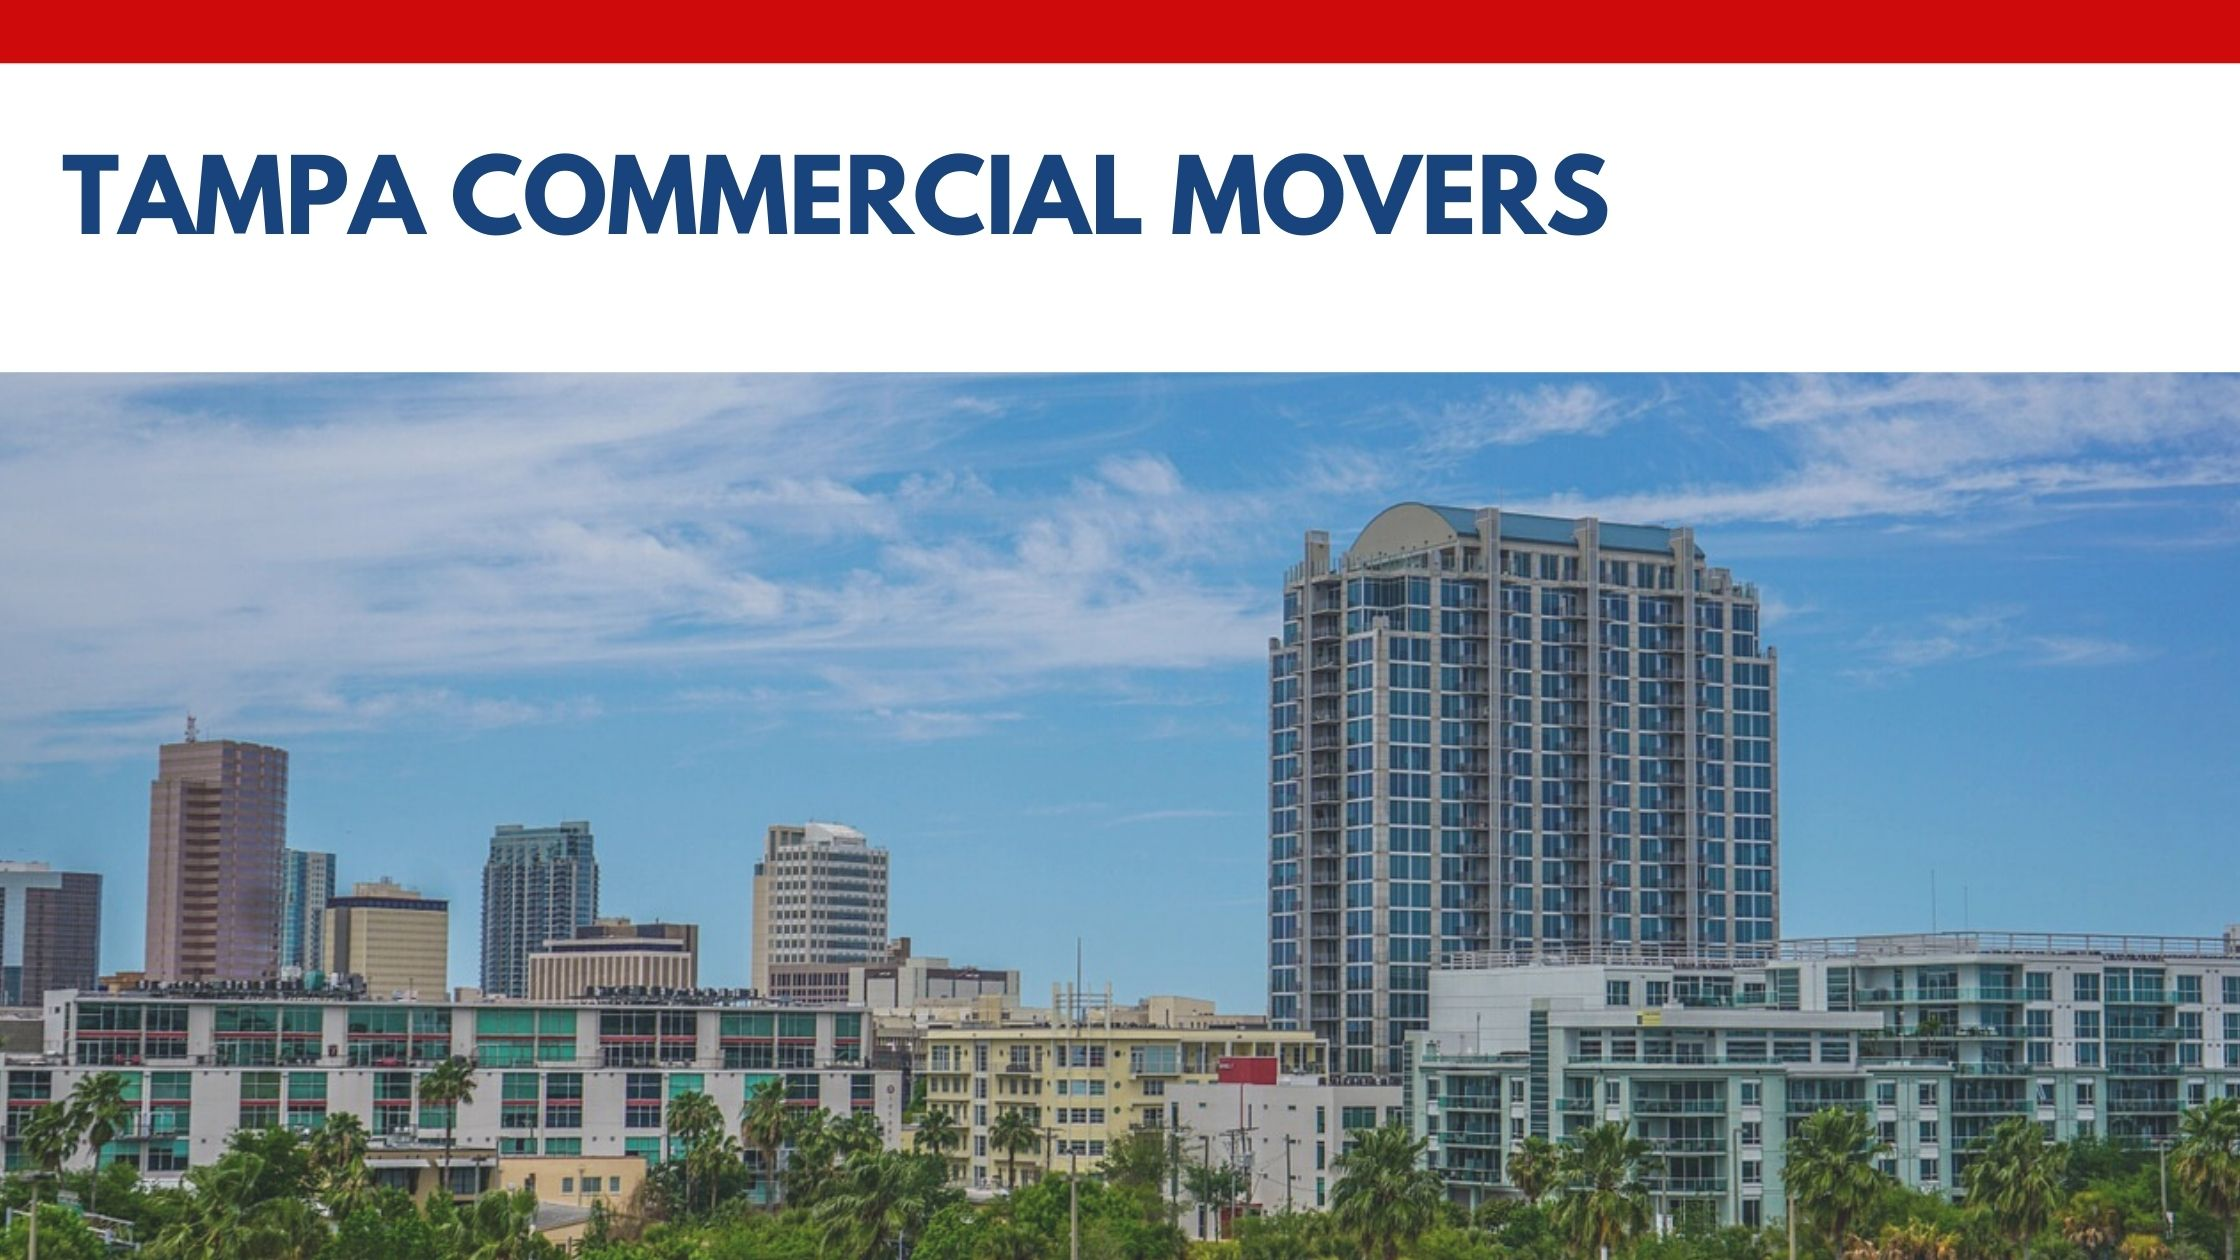 Tampa Commercial Movers